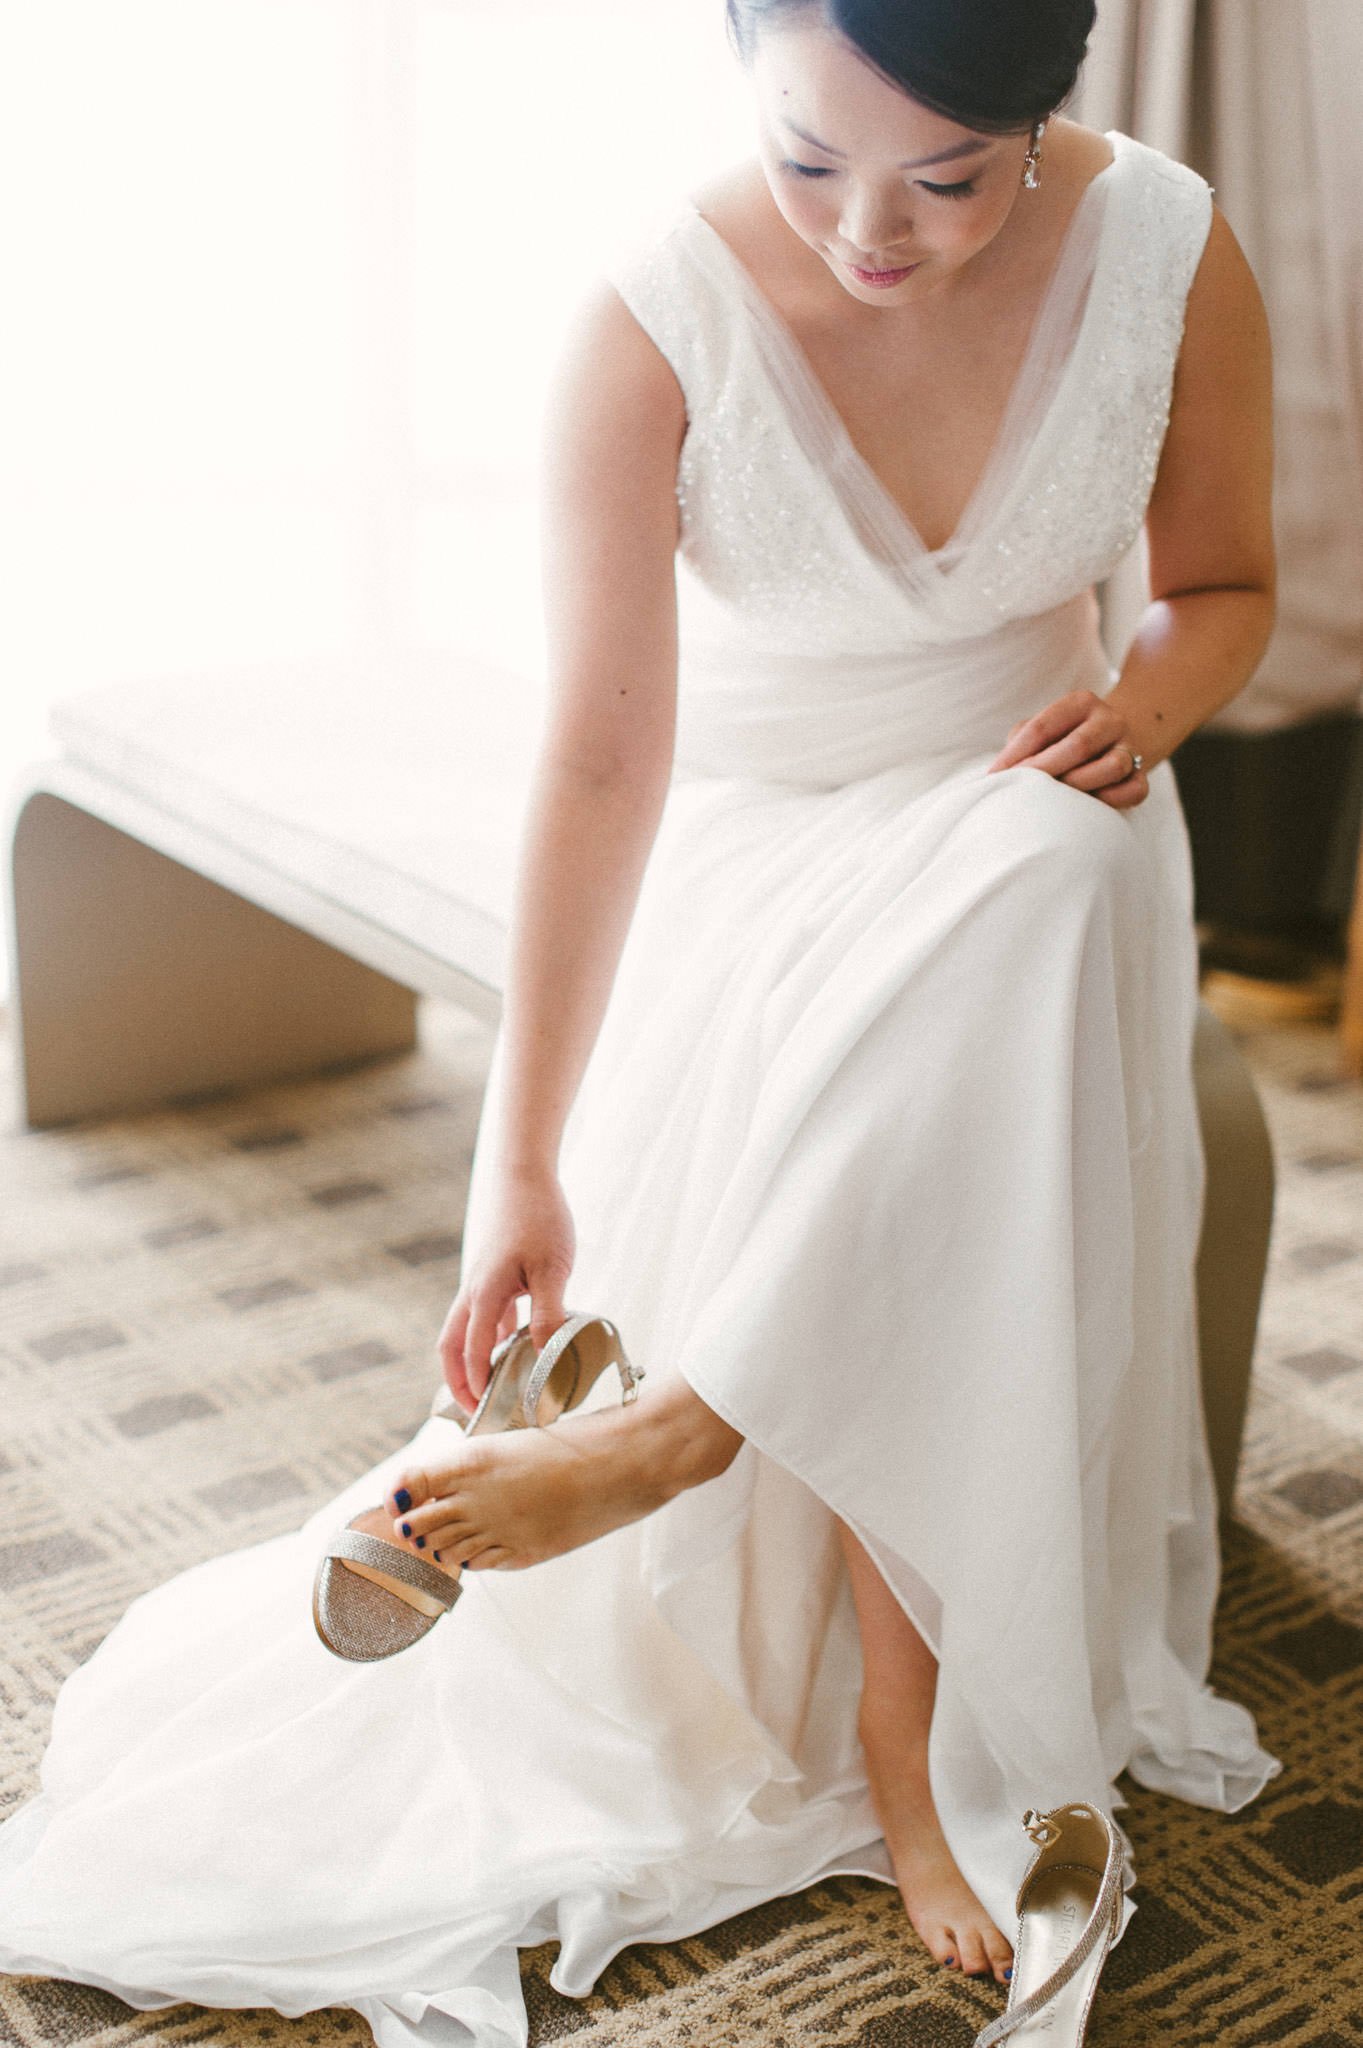 Vancouver bride getting ready